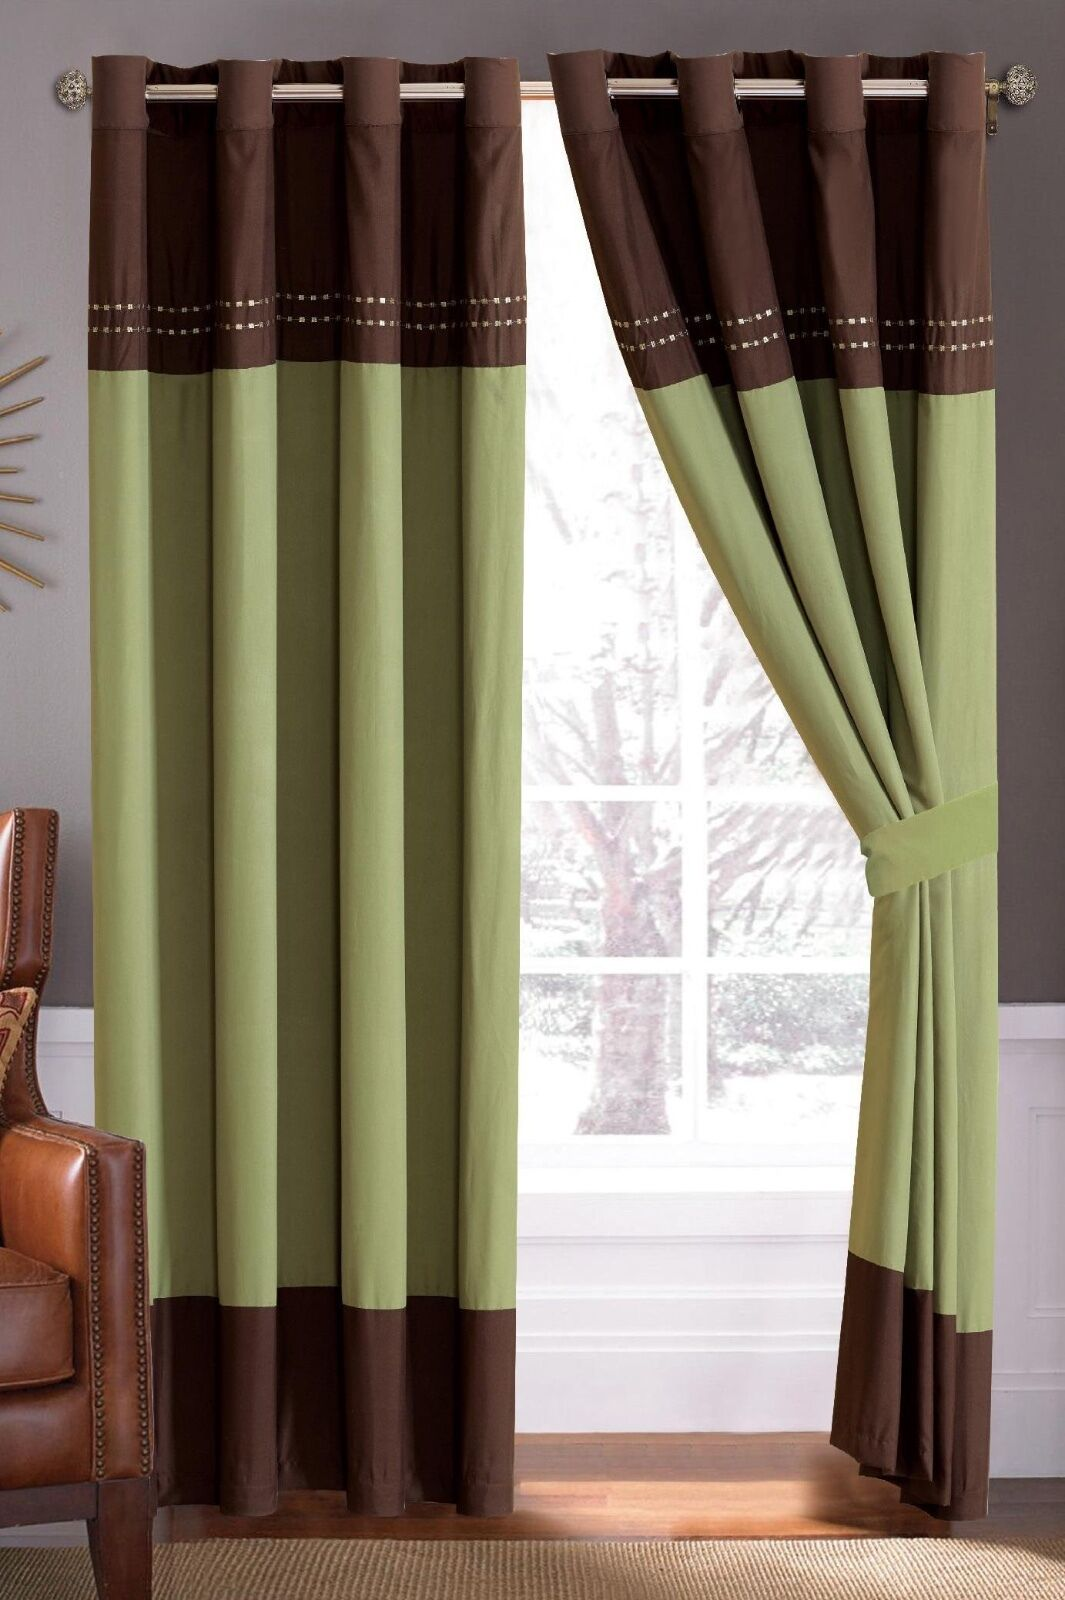 Andrea Embroidery Window Curtains Grommet Panels Set of 2 - Green